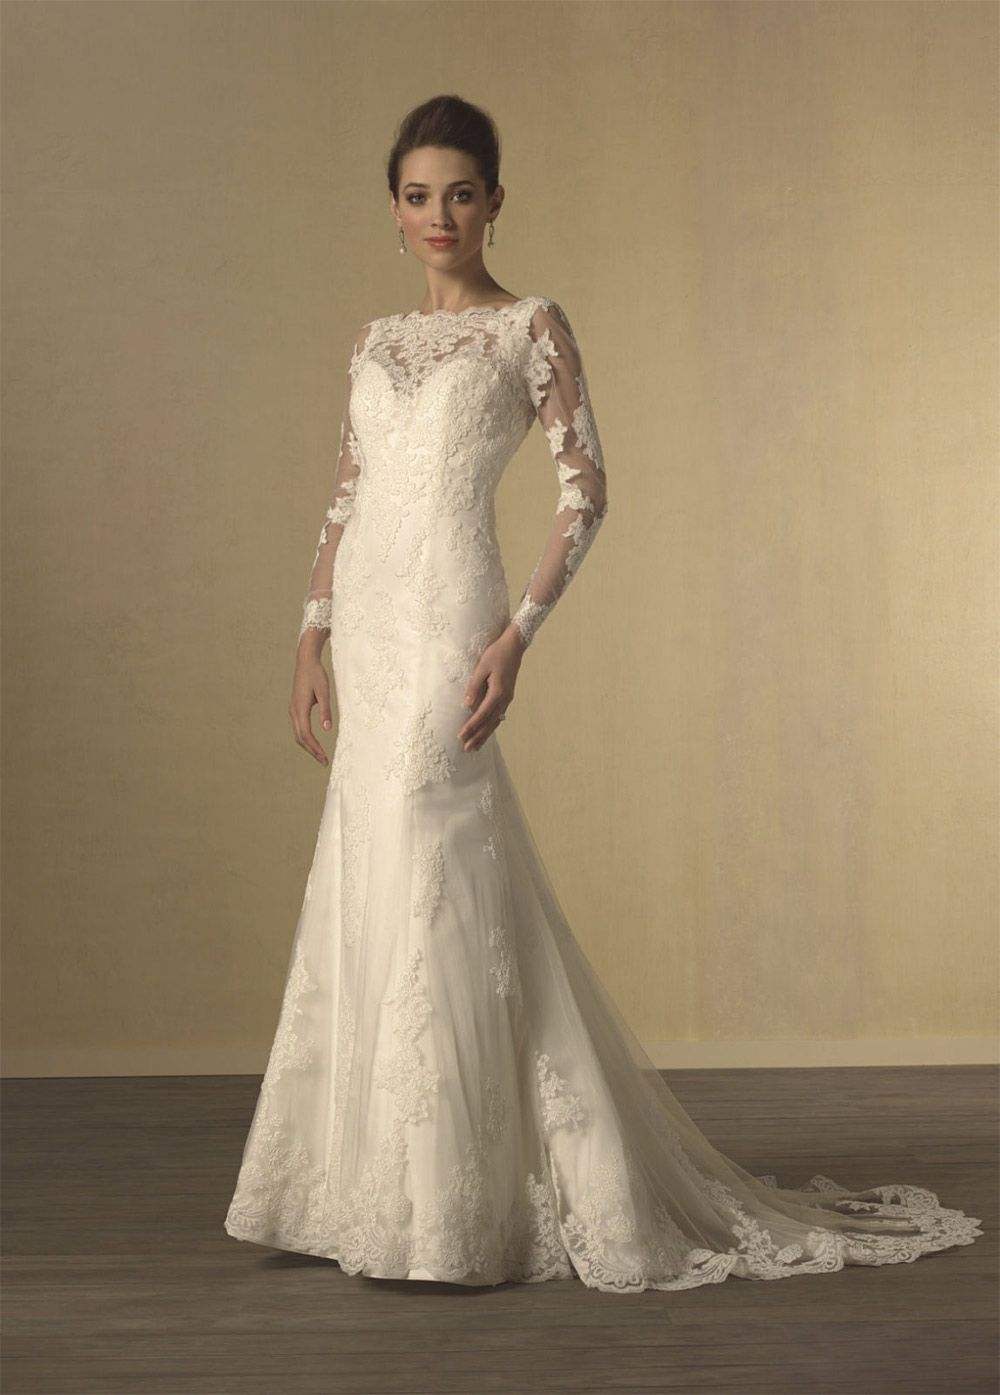 Twilight Wedding Dress – Get the Look